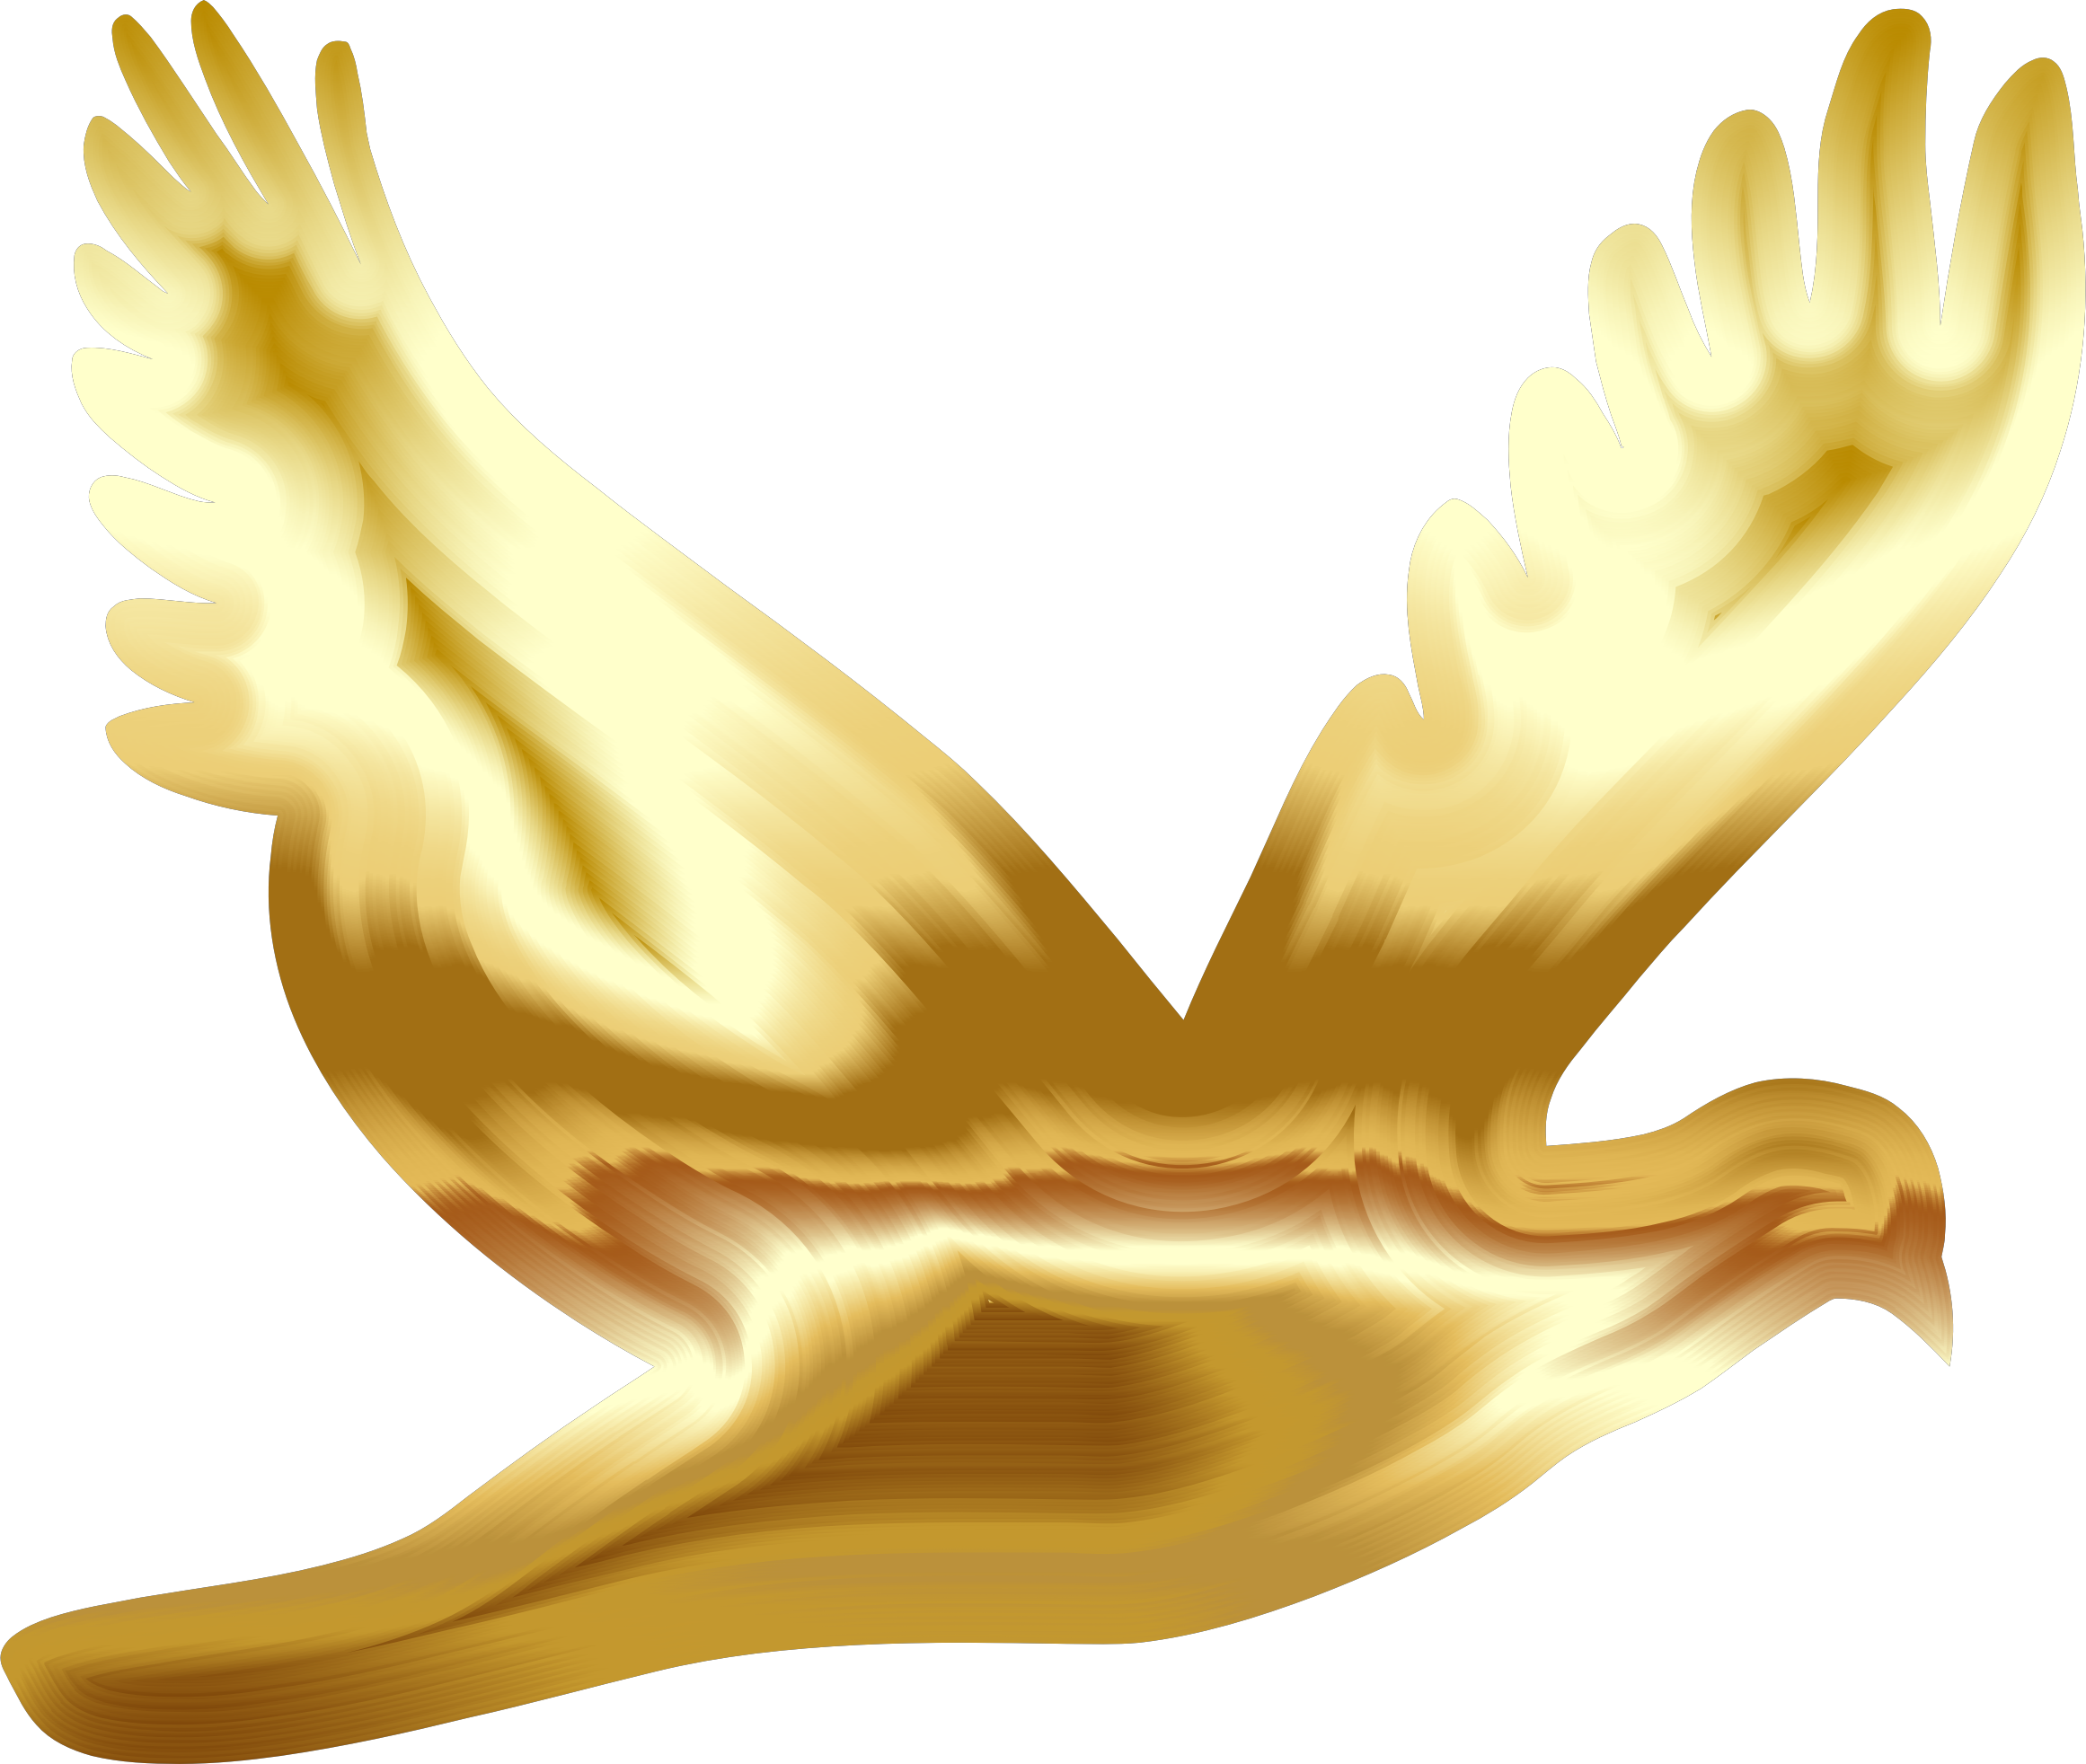 Doves clipart yellow. Silhouette at getdrawings com